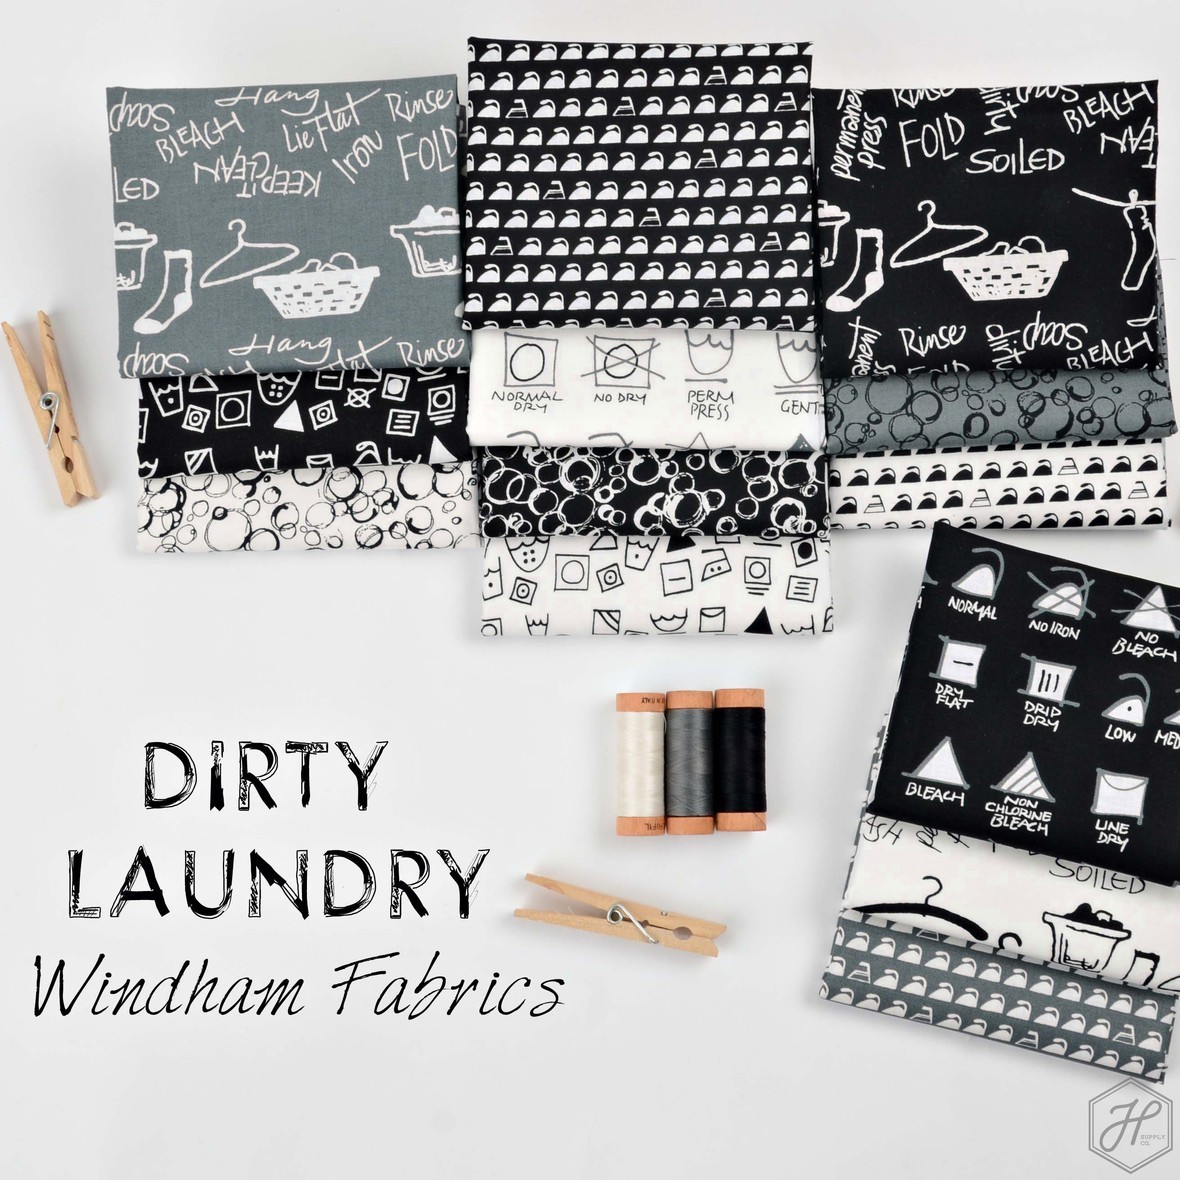 Dirty Laundry Fabric Windham at Hawthorne Supply Co